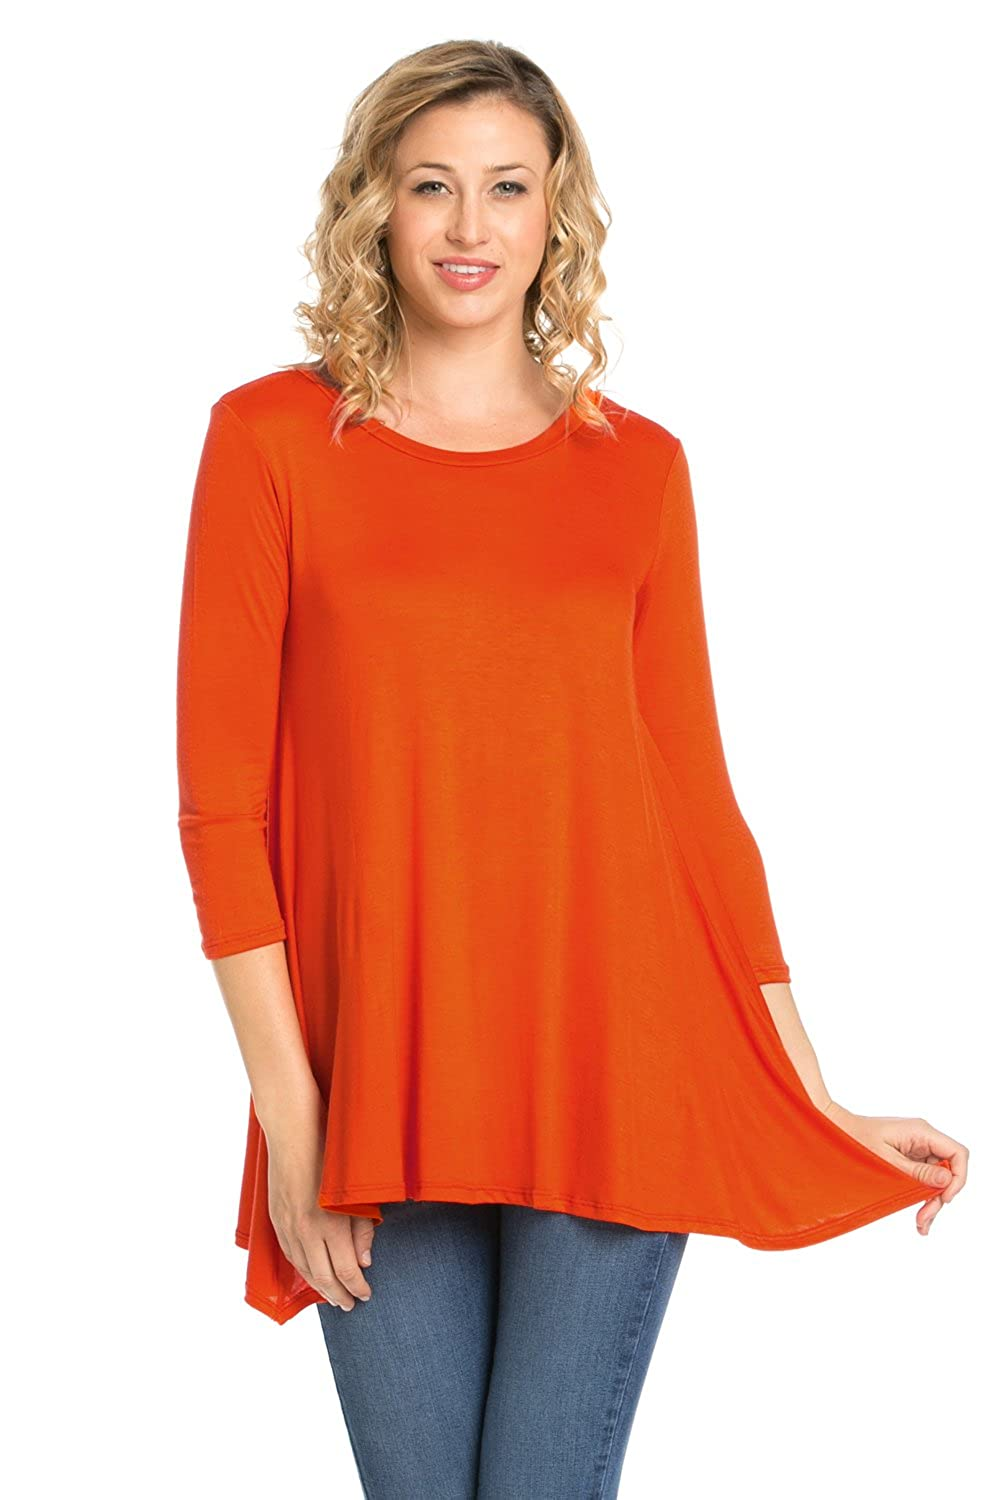 9a8bba2254c Made in USA This tunics for women is perfect to wear for leggings and  jeans. Round neck with 3/4 sleeve tunic tops for leggings for women